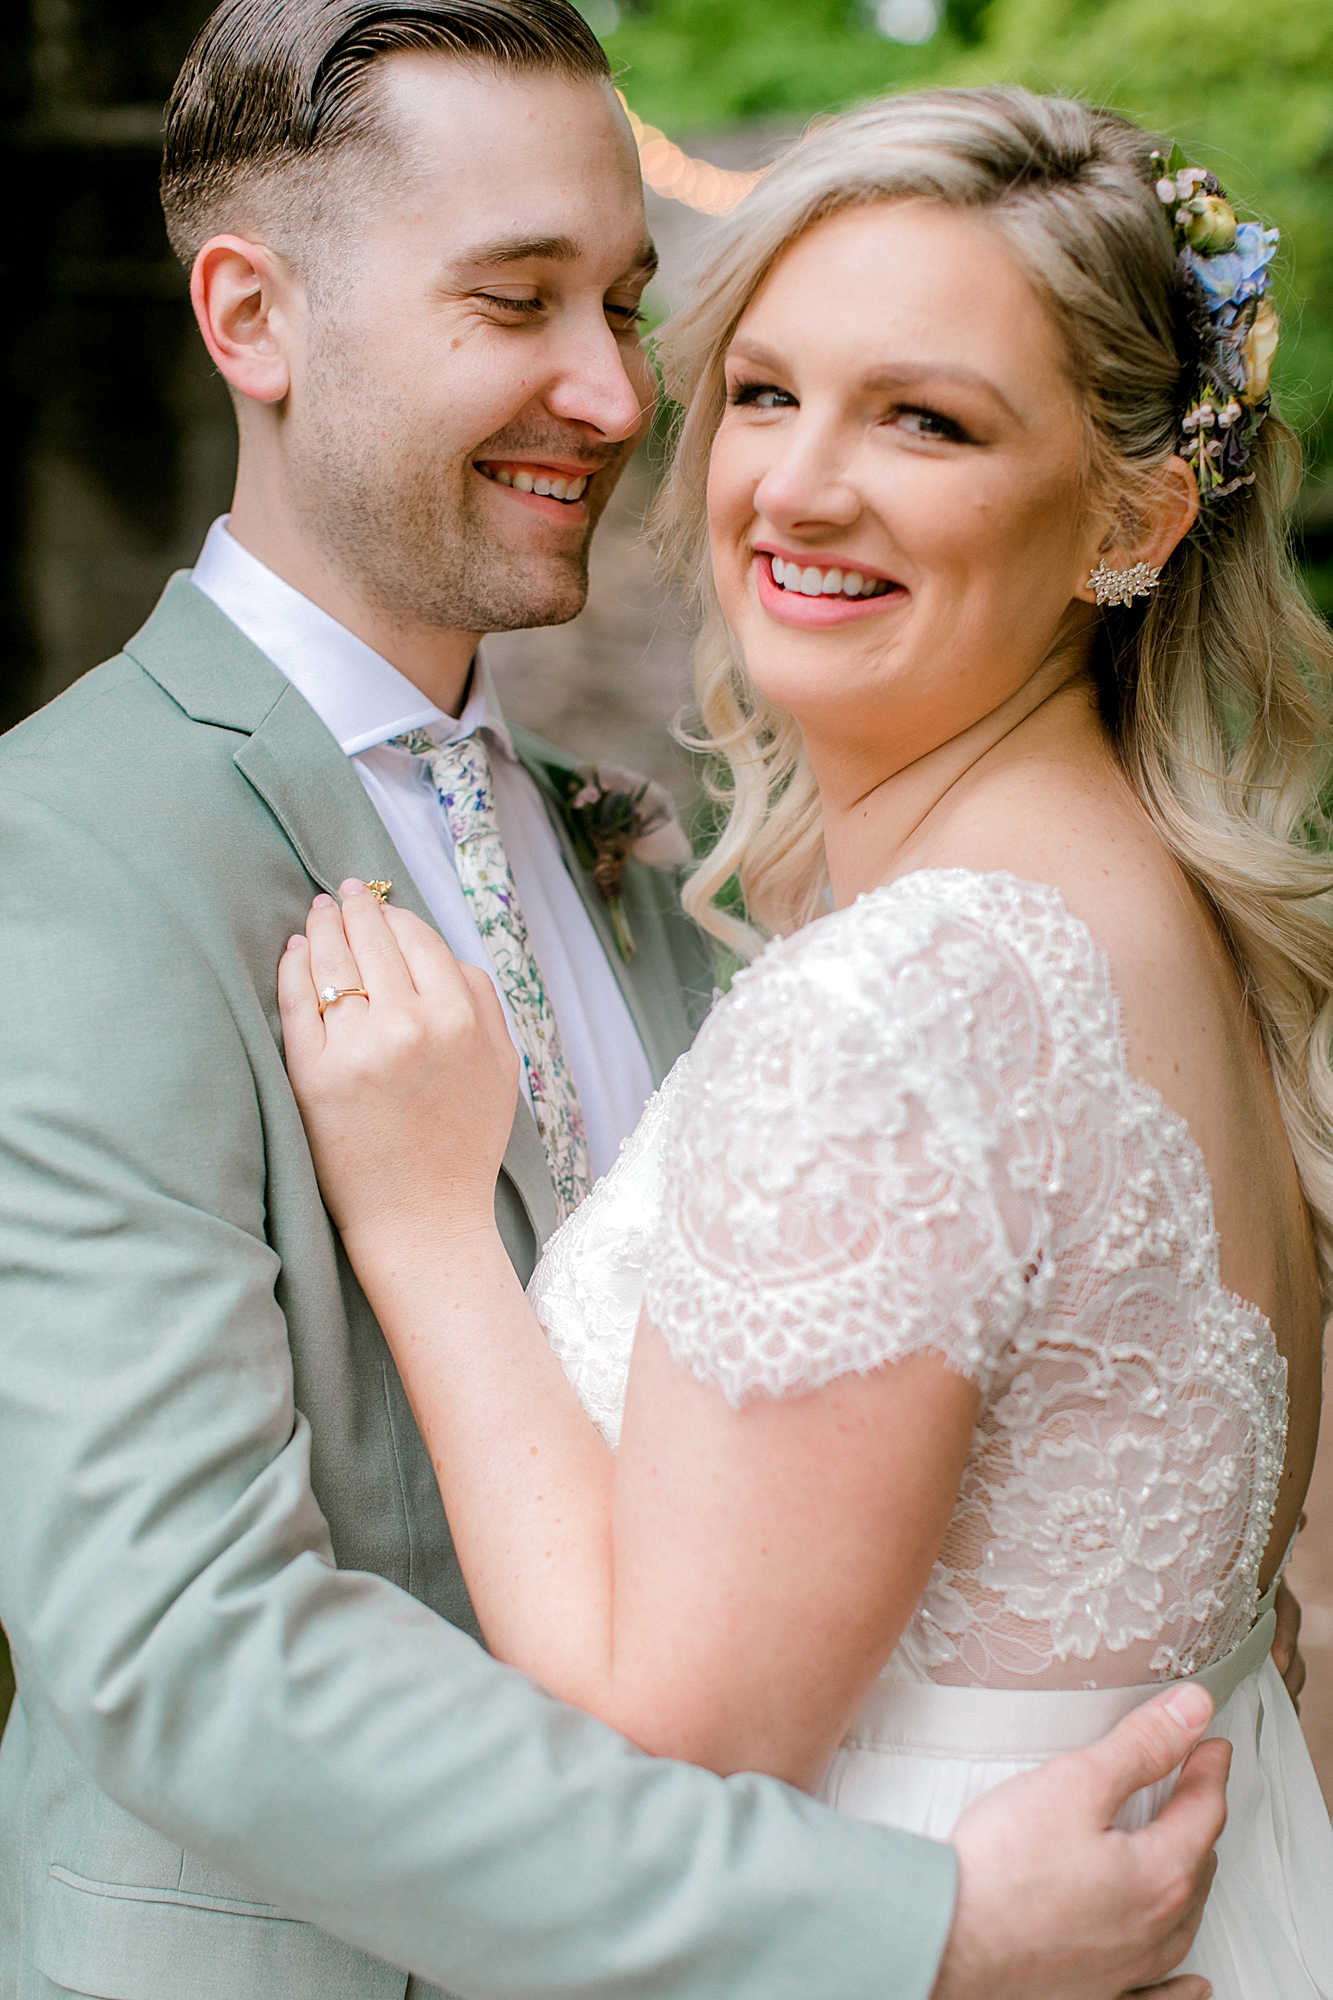 Intimate and Sweet Estate Wedding Photography by Magdalena Studios 0051